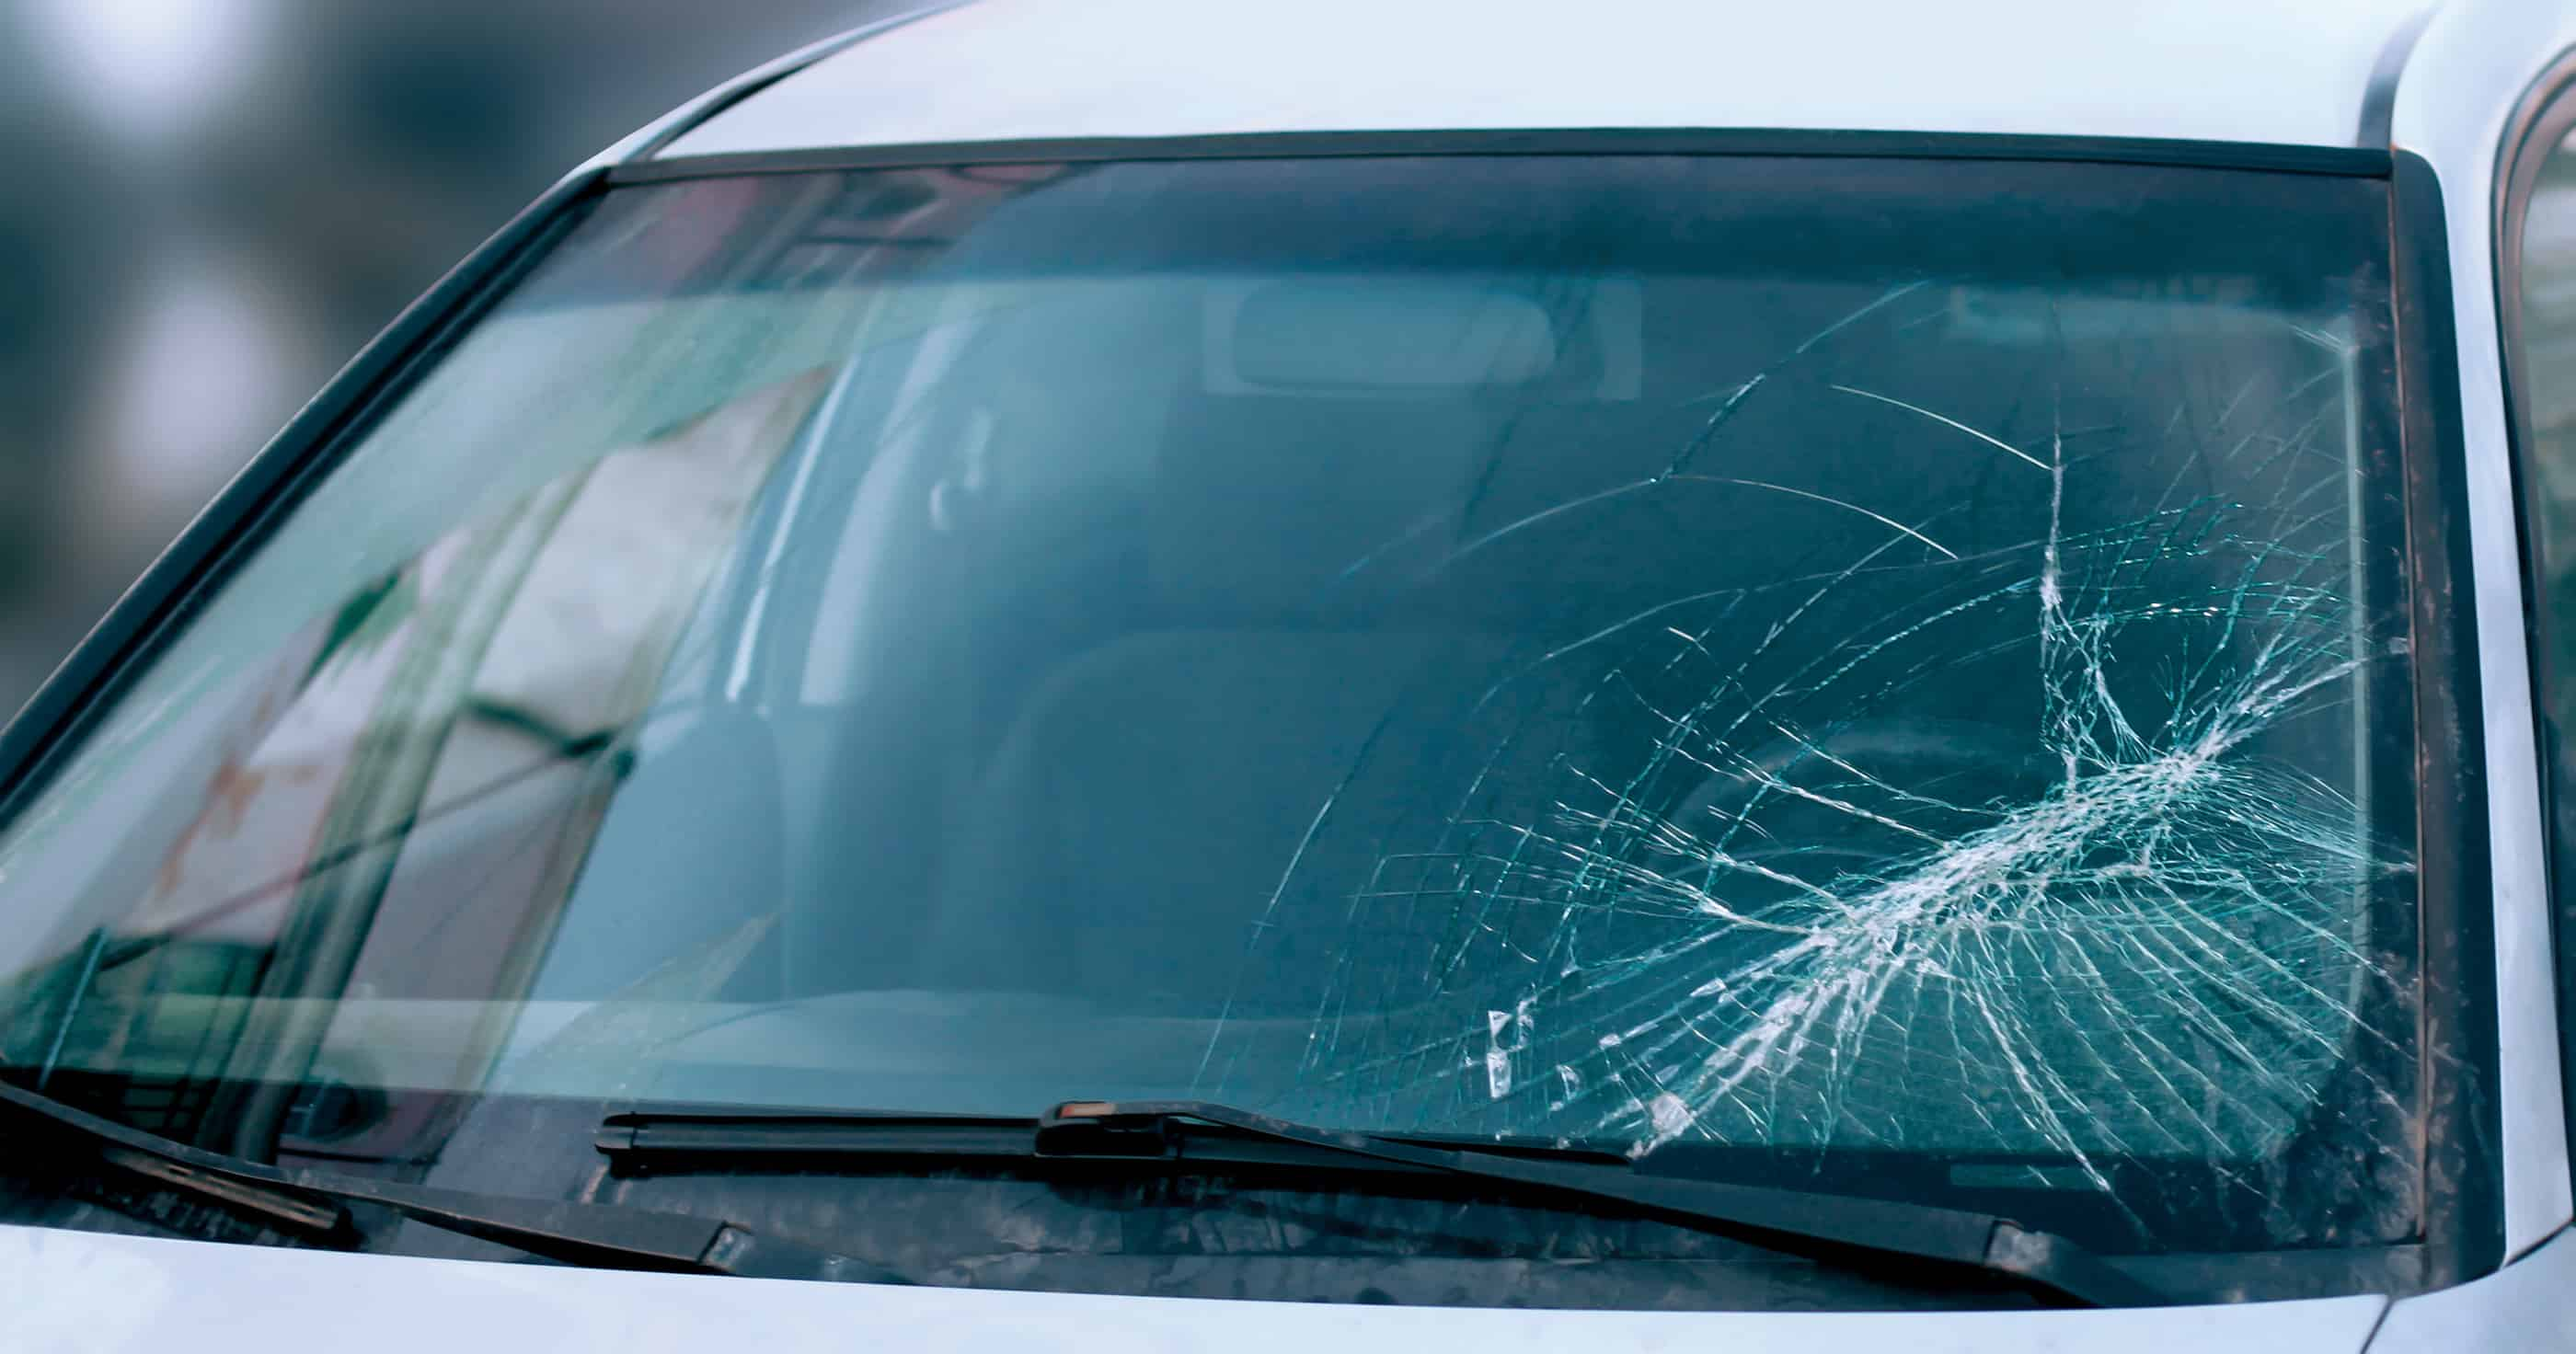 Windshield Replacement Near Me >> Best Windshield Replacement Near Me Windshield Replacement San Diego